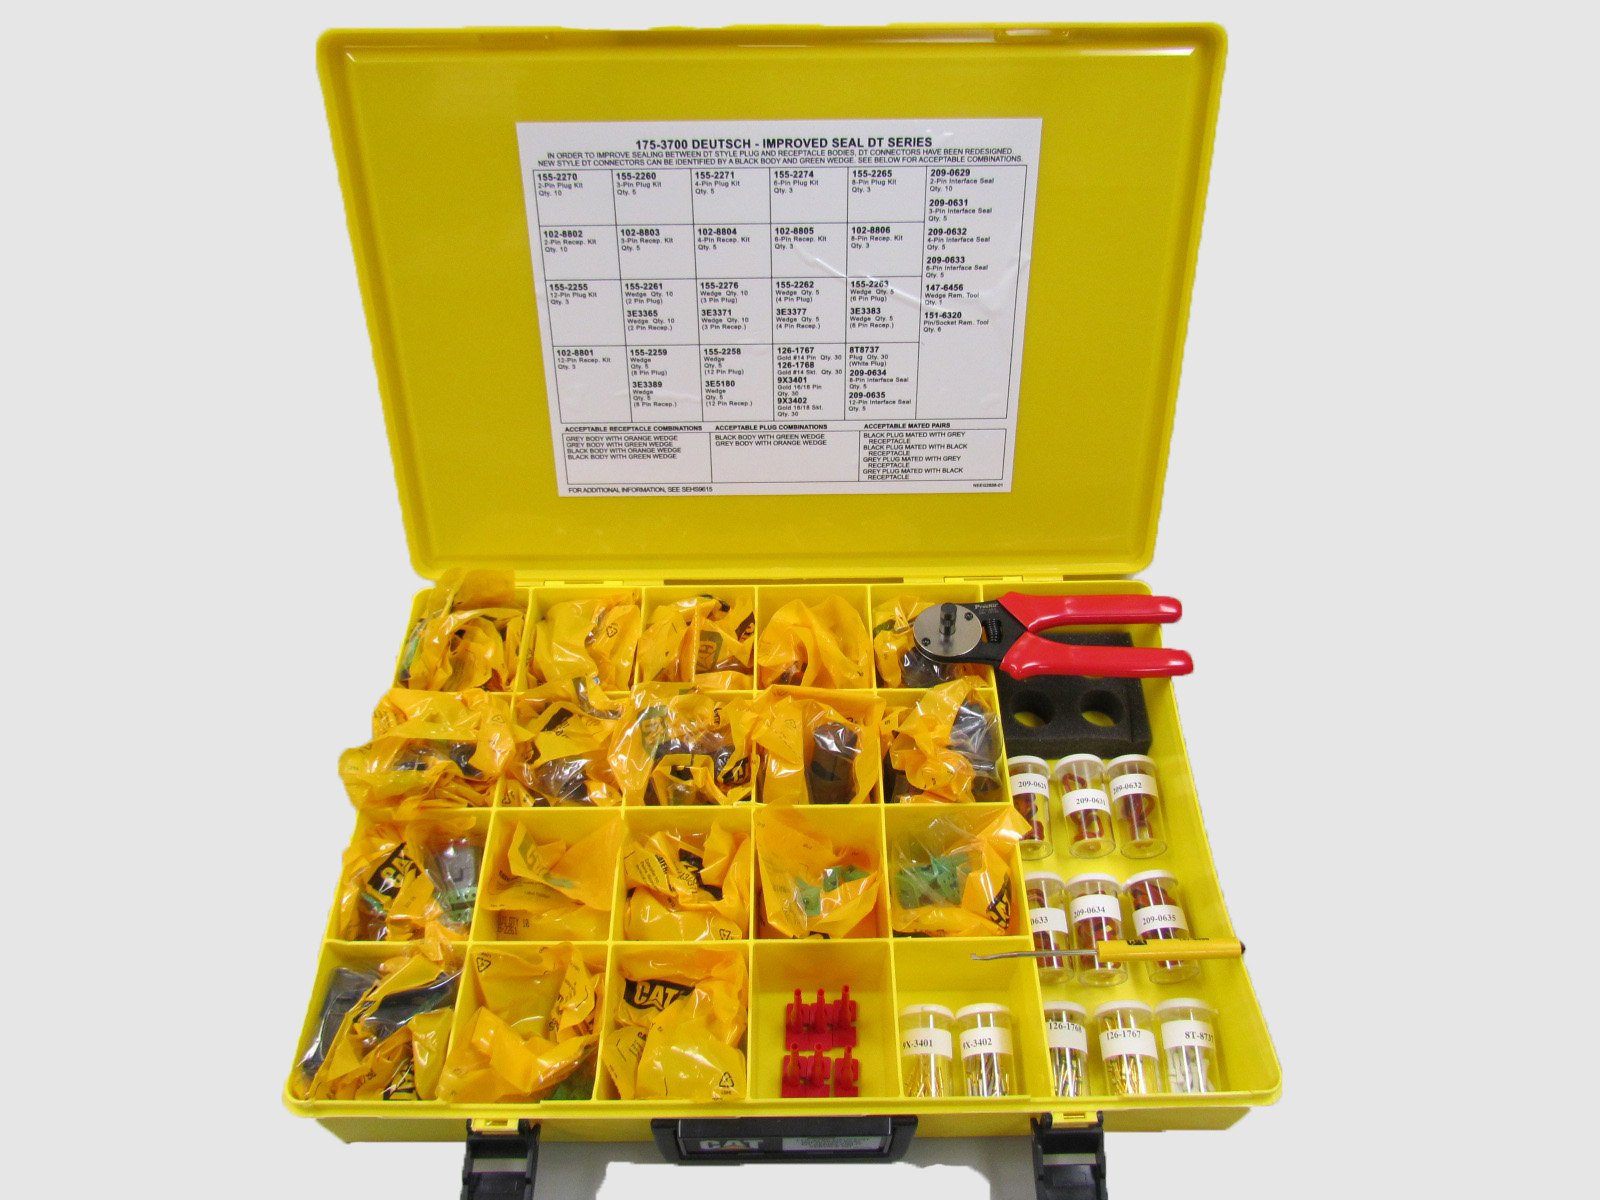 Electrical System Tools - Mega Sale! Save up to 30% | Auto Tools City